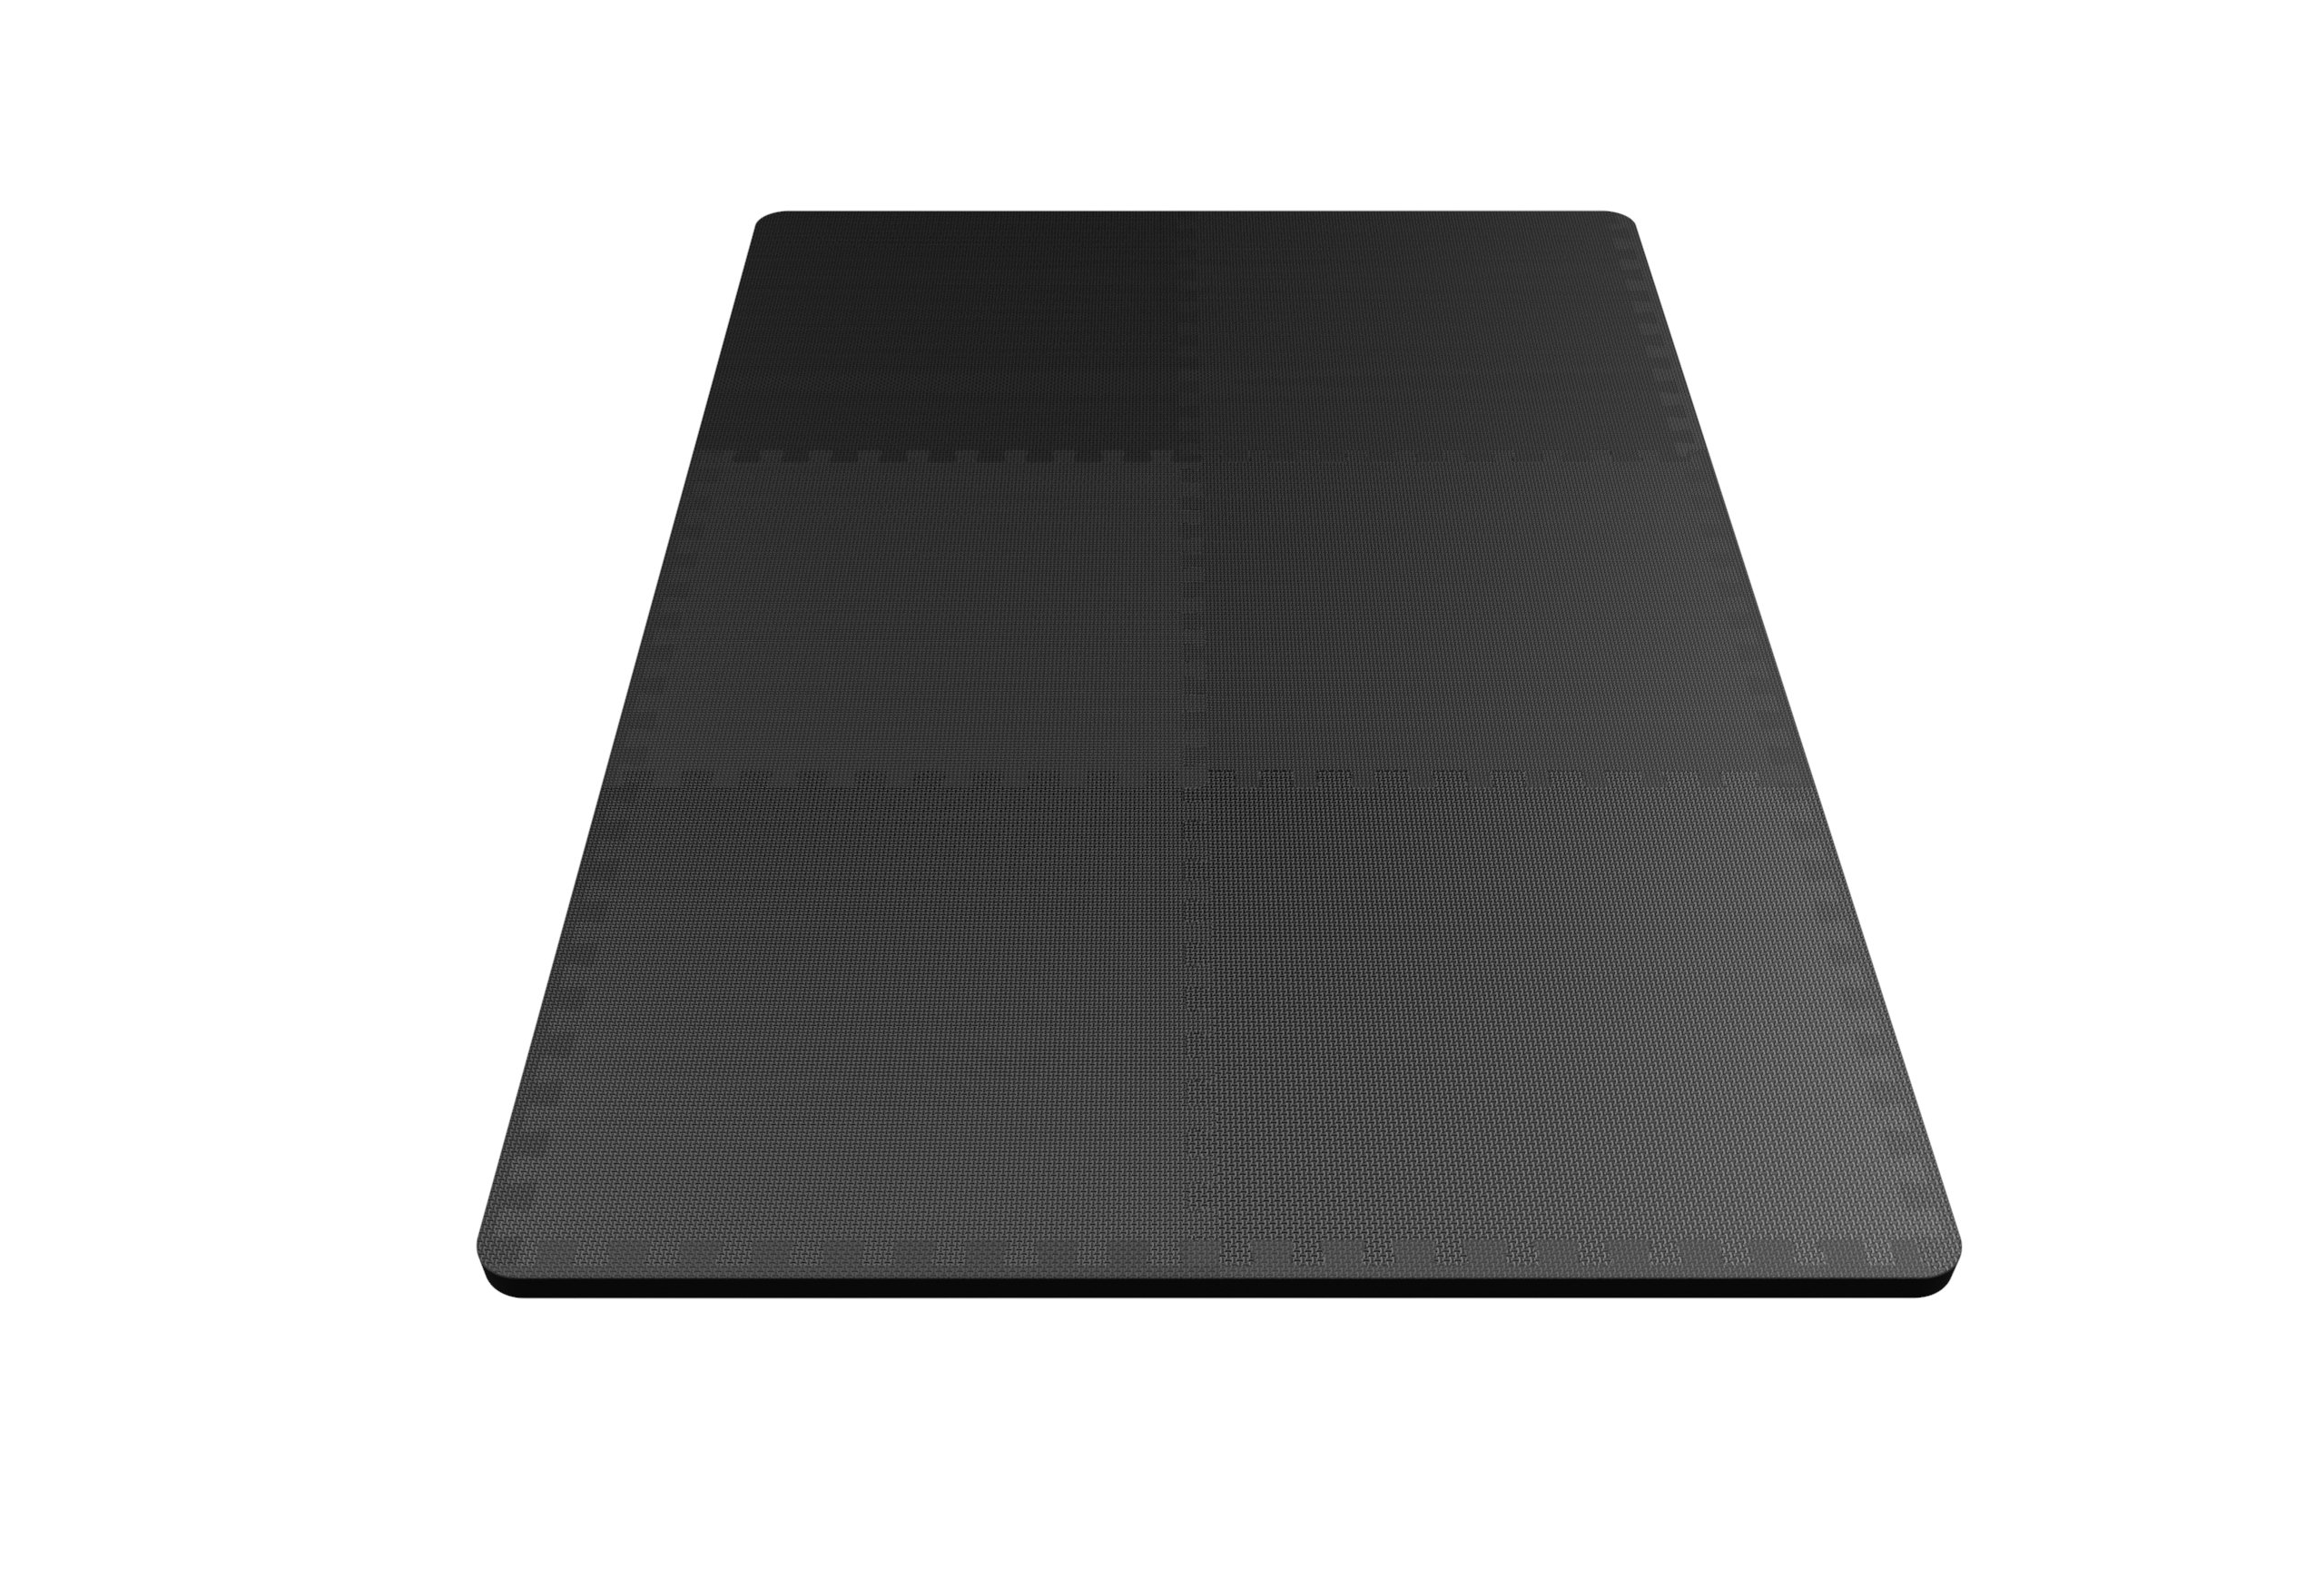 LEVOIT Puzzle Exercise Floor Mat for Gym Equipment, EVA Foam Interlocking Tiles, Protective Flooring for Working Out, Easy Assembly, 24 SQ FT (6 Tiles, 12 Borders), Black by LEVOIT (Image #8)